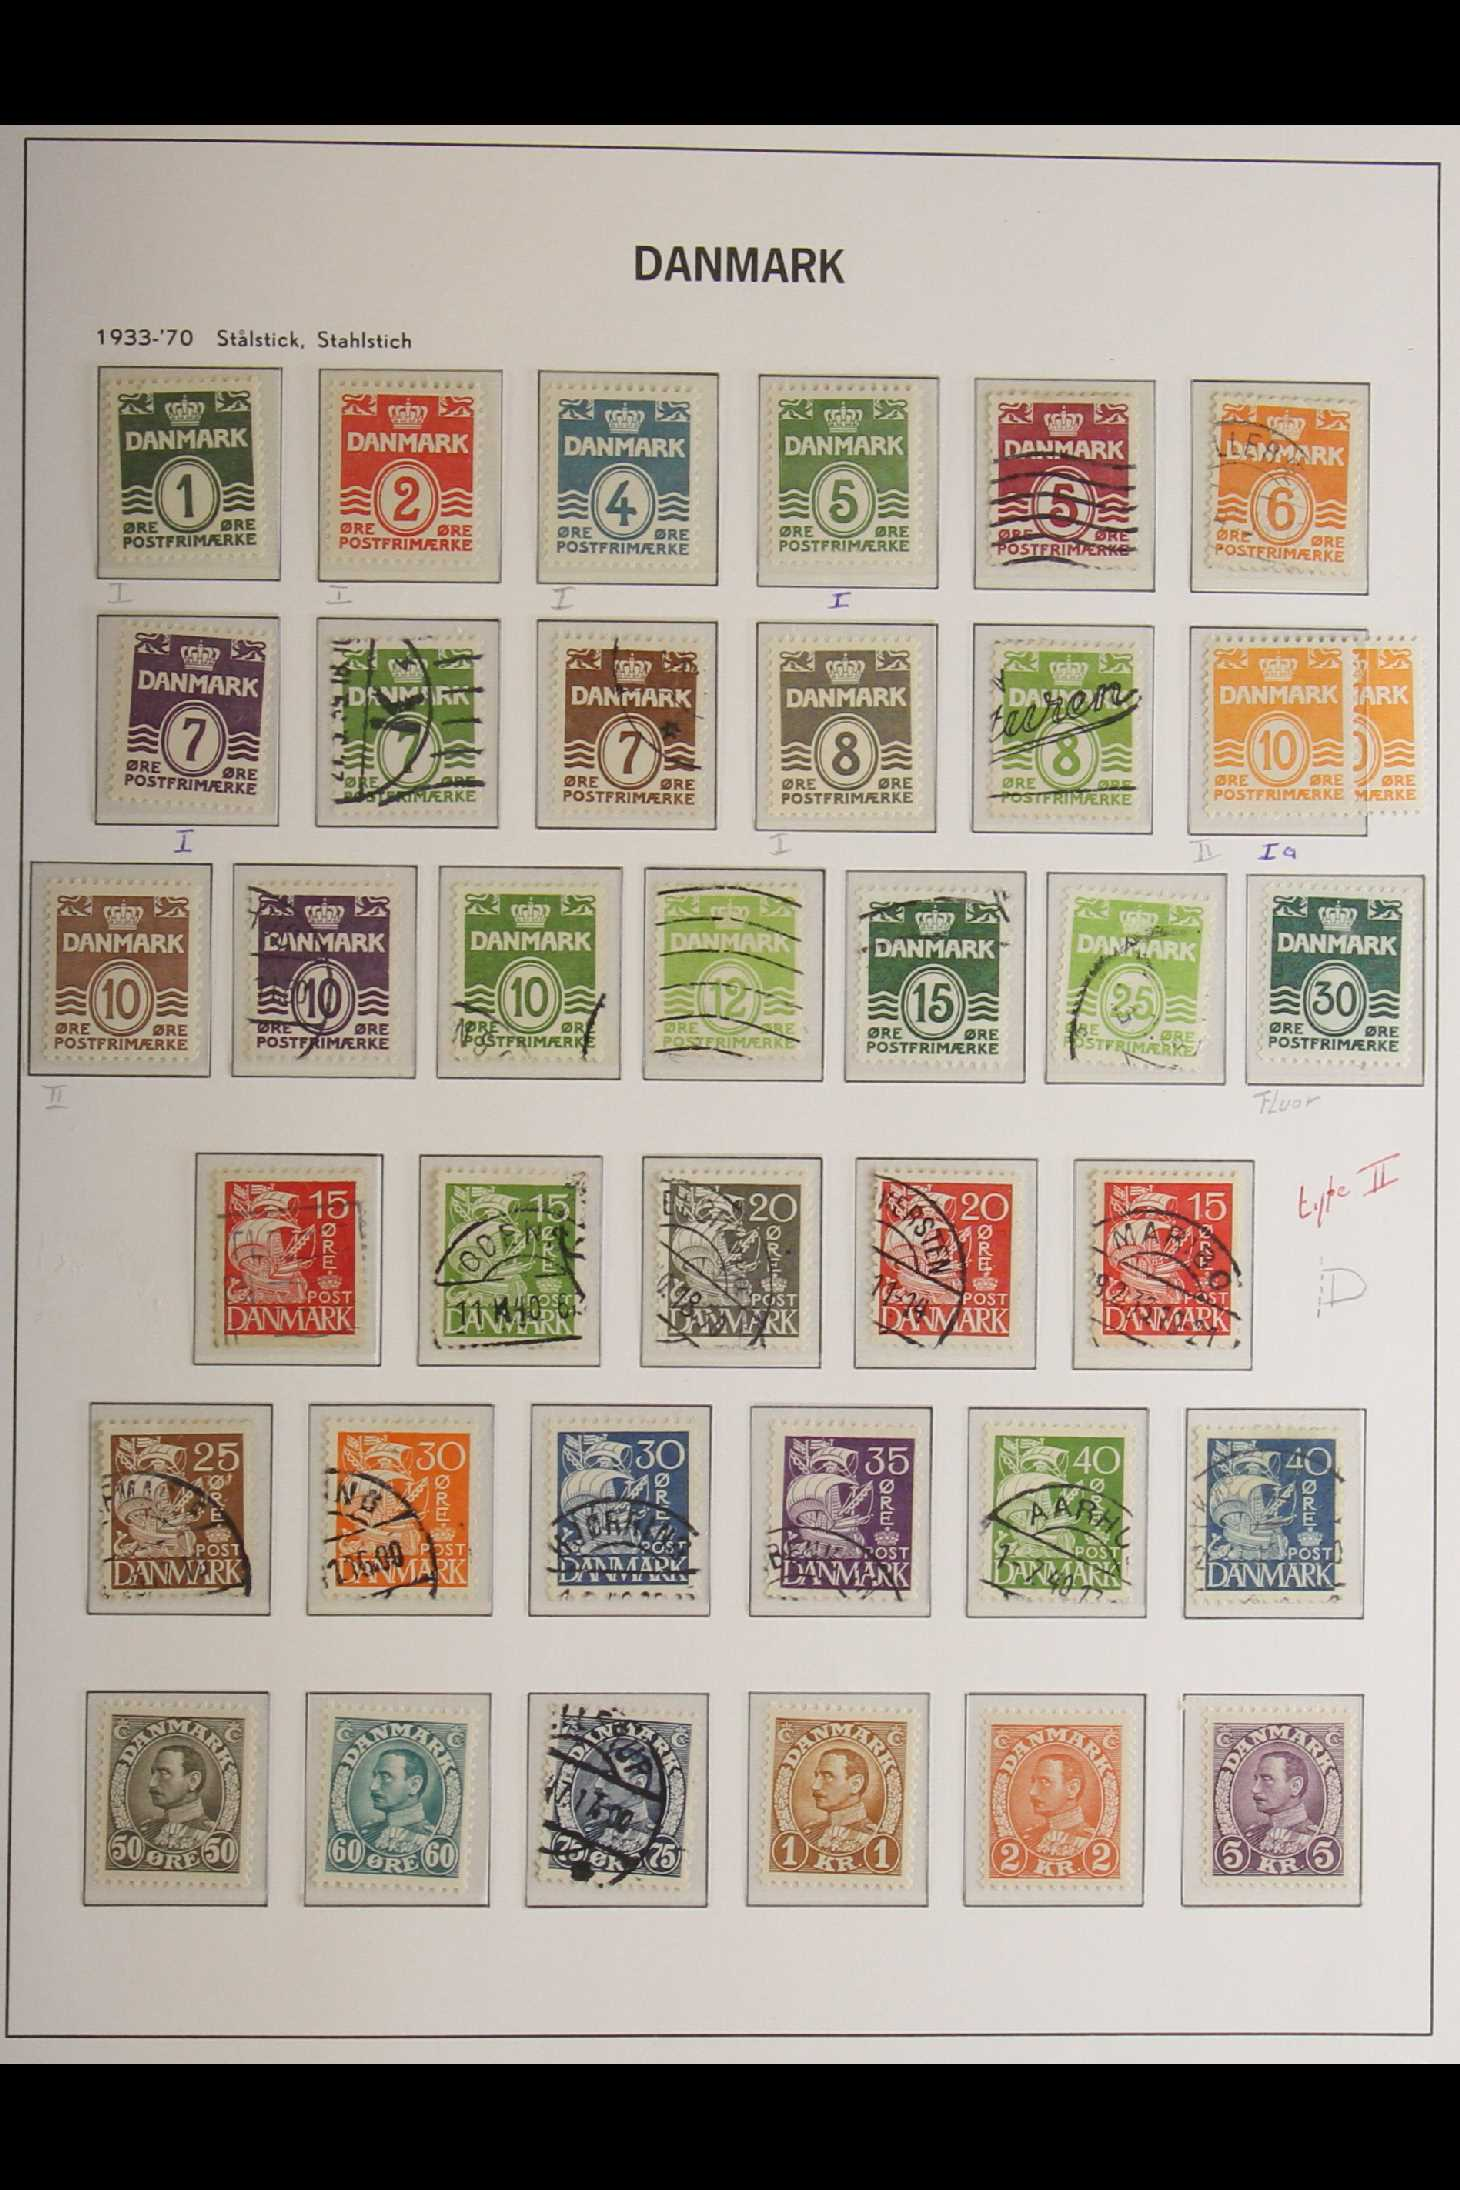 DENMARK 1882-1969 mint and used collection in an album incl. 1882 (small corner figures) 5 ore and - Image 7 of 15